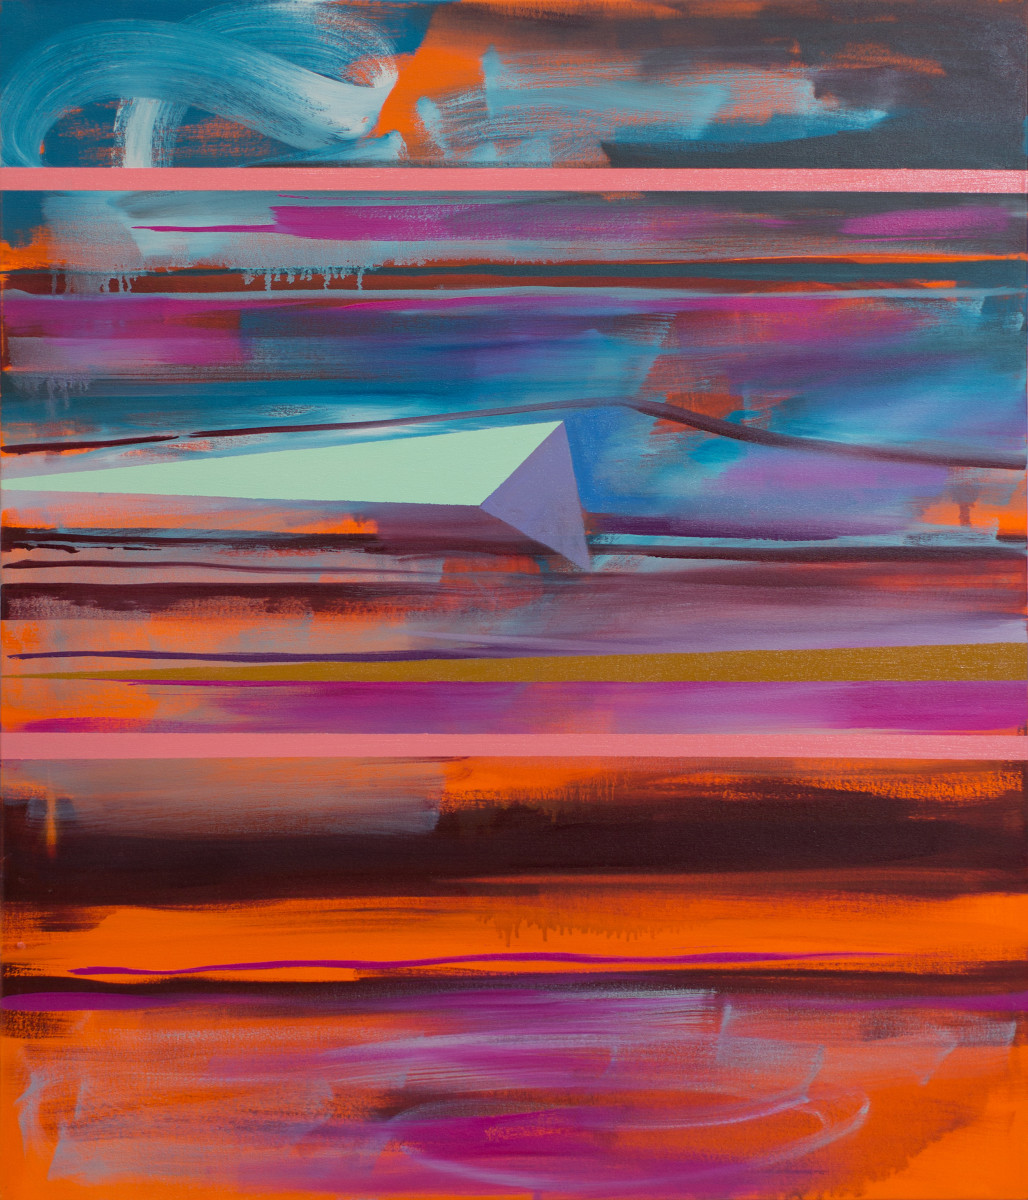 Abstract  Study (stacked horizons no.5) by Pamela Staker